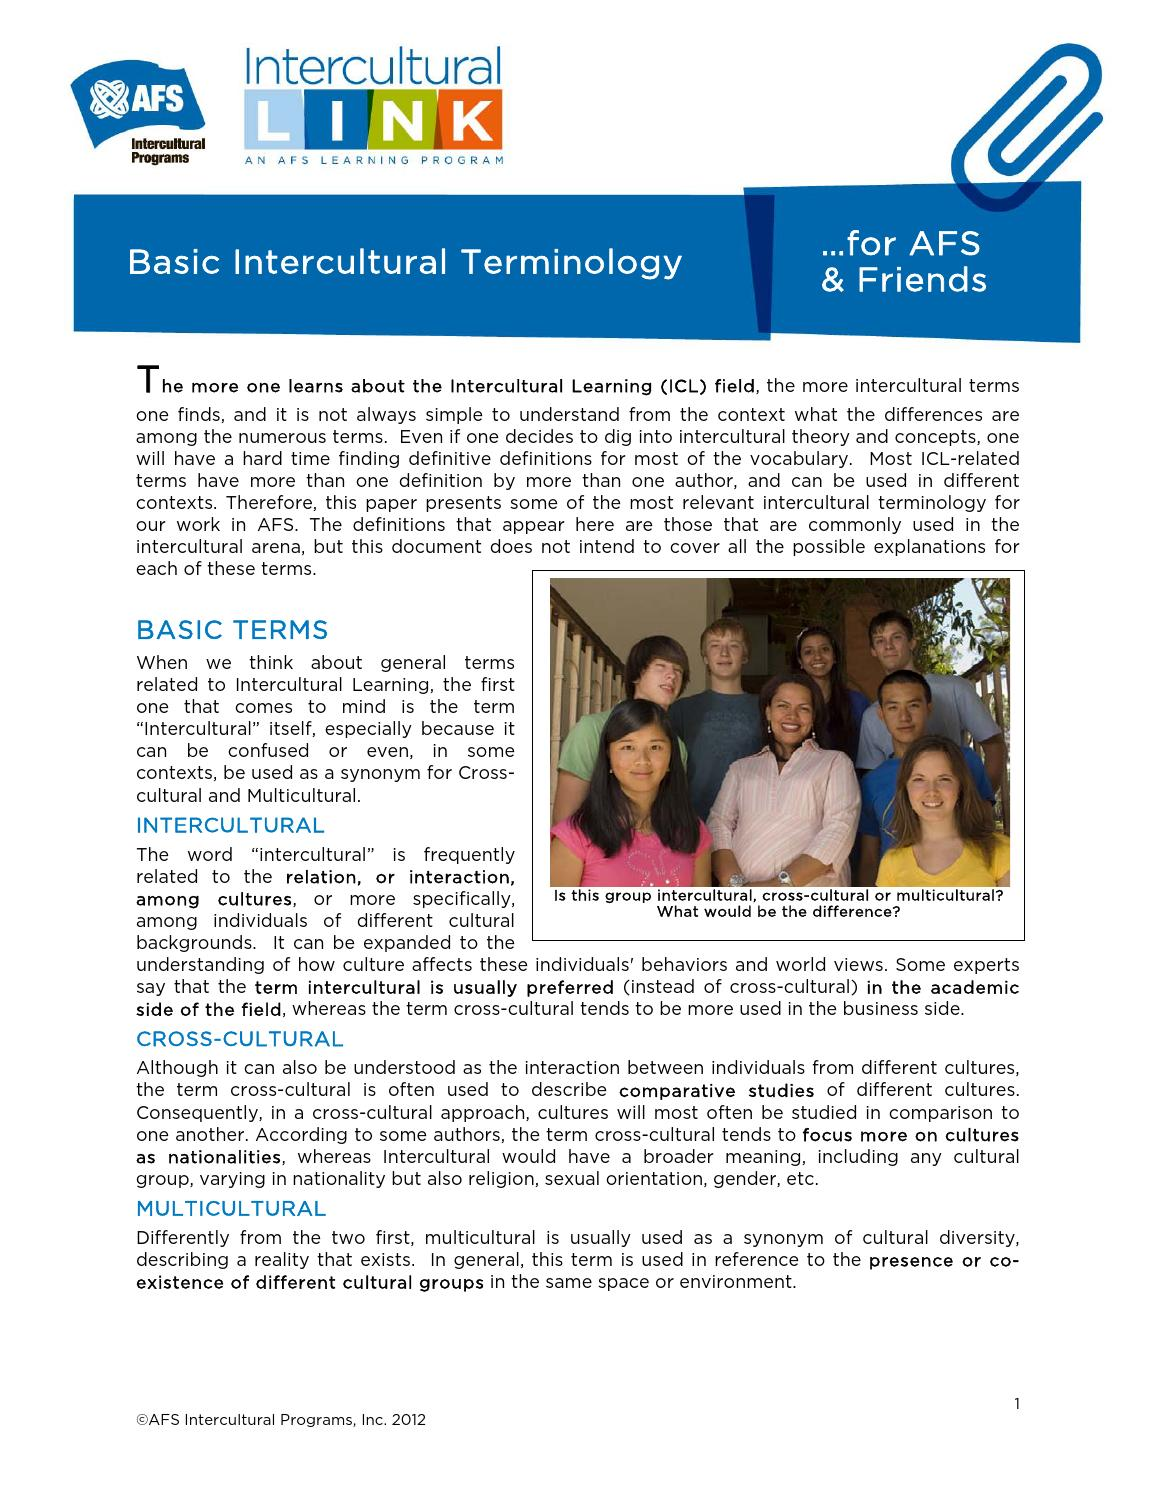 ICL Terminology for AFS & Friends by AFS Intercultural